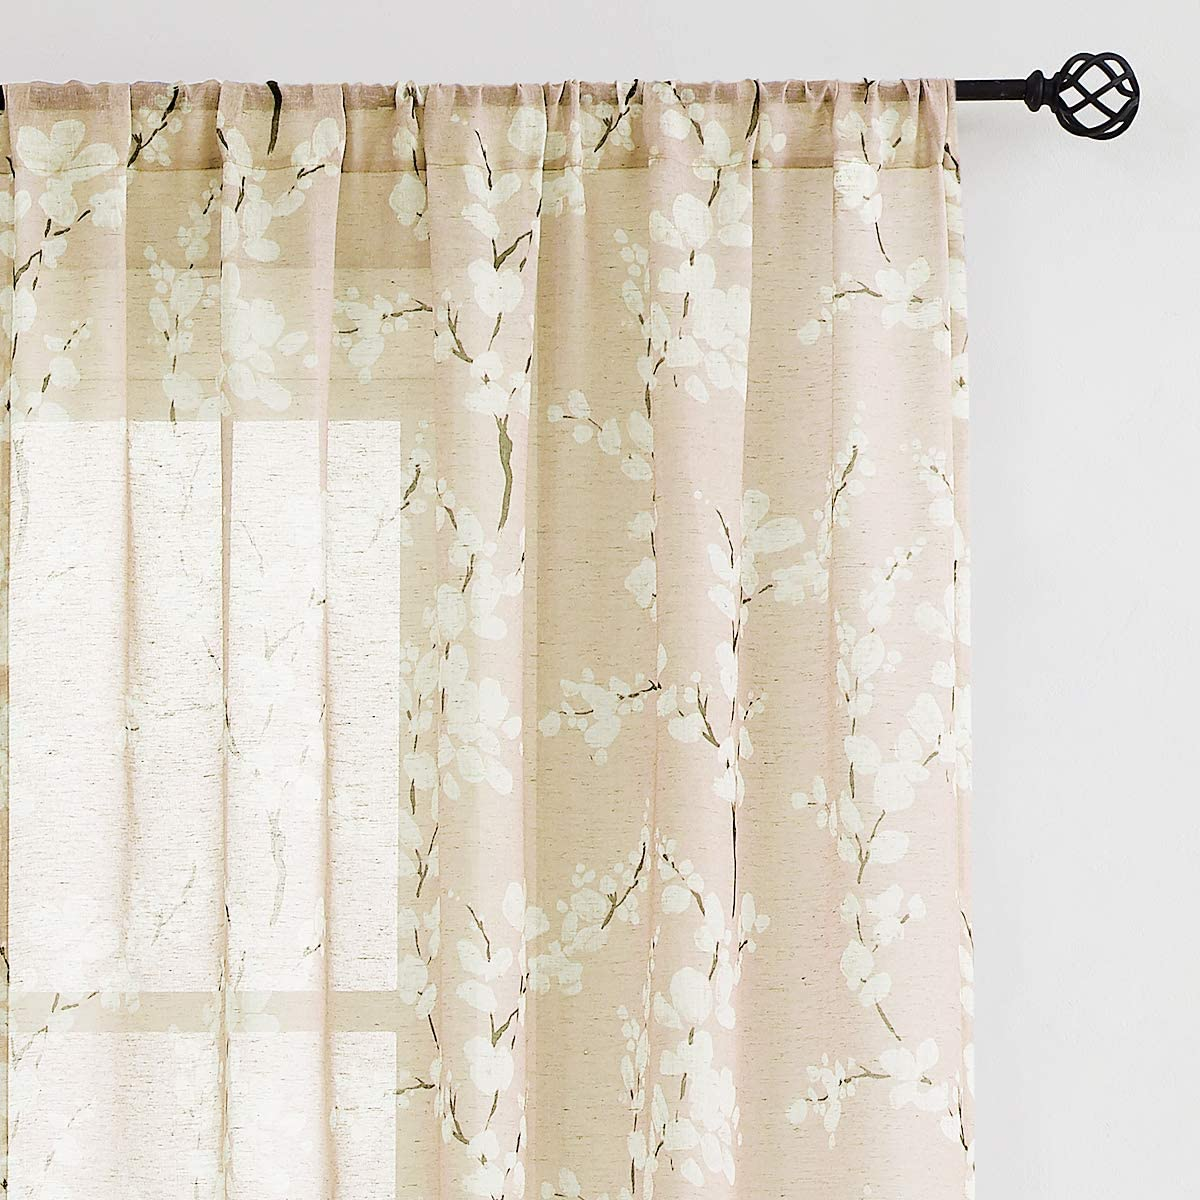 Amazon Com Fmfunctex Beige Blossom Flax Linen Sheer Curtains 84inches Long For Living Room Light Filtering Floral Print Window Drapes 2 Pack Rod Pocket 7ft Home Kitchen